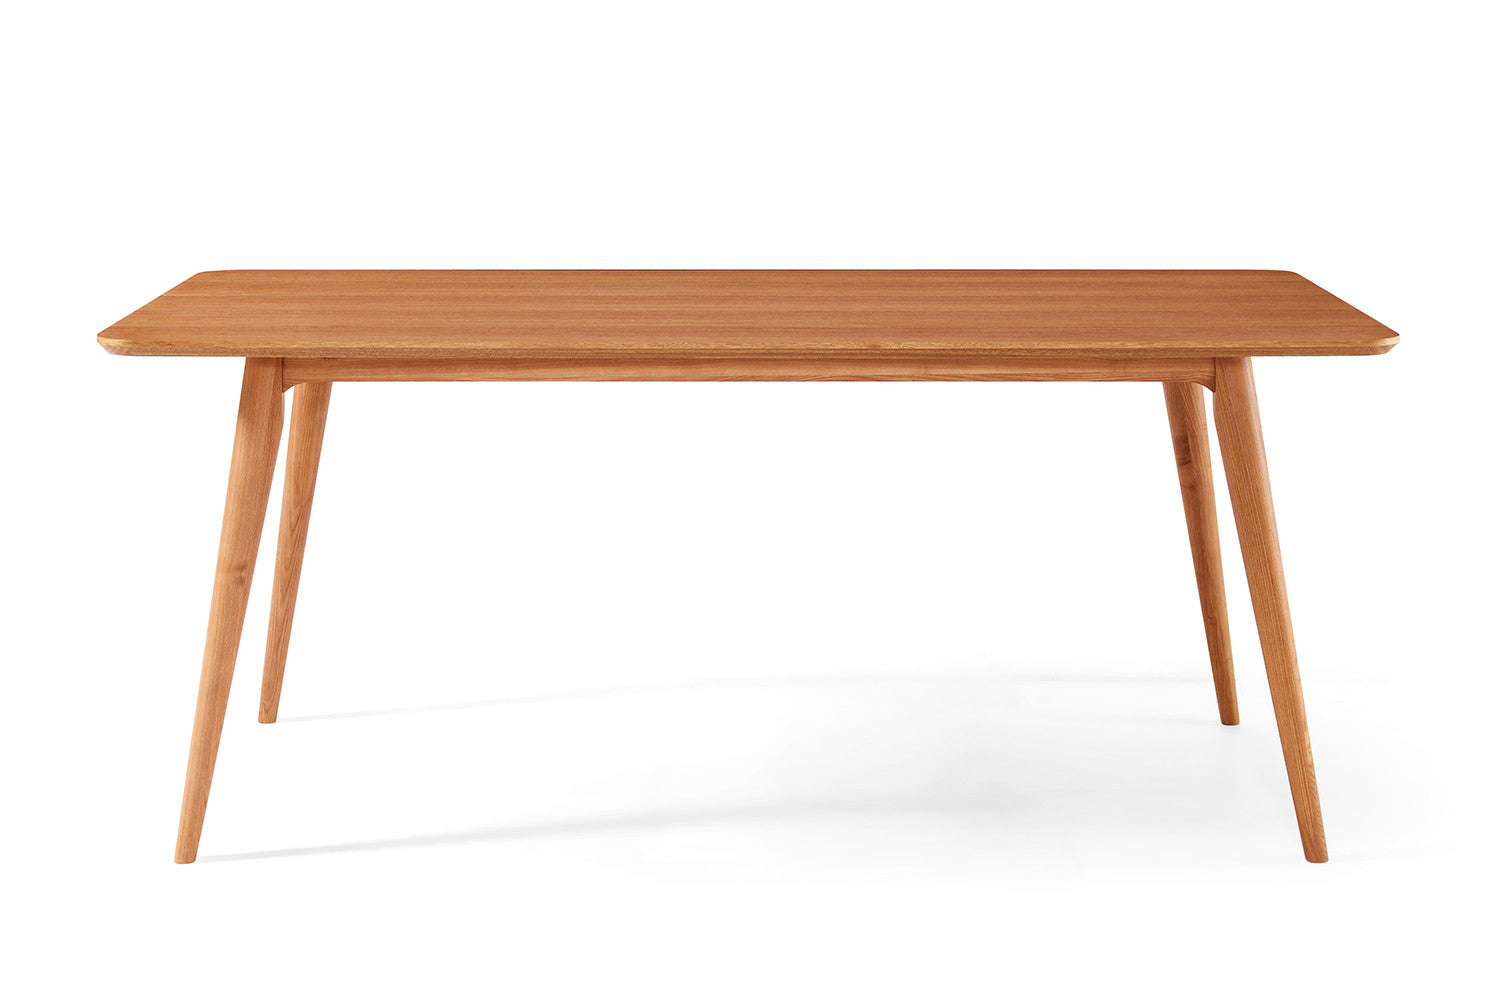 Table de salle manger design en bois julia dewarens for Table a manger design